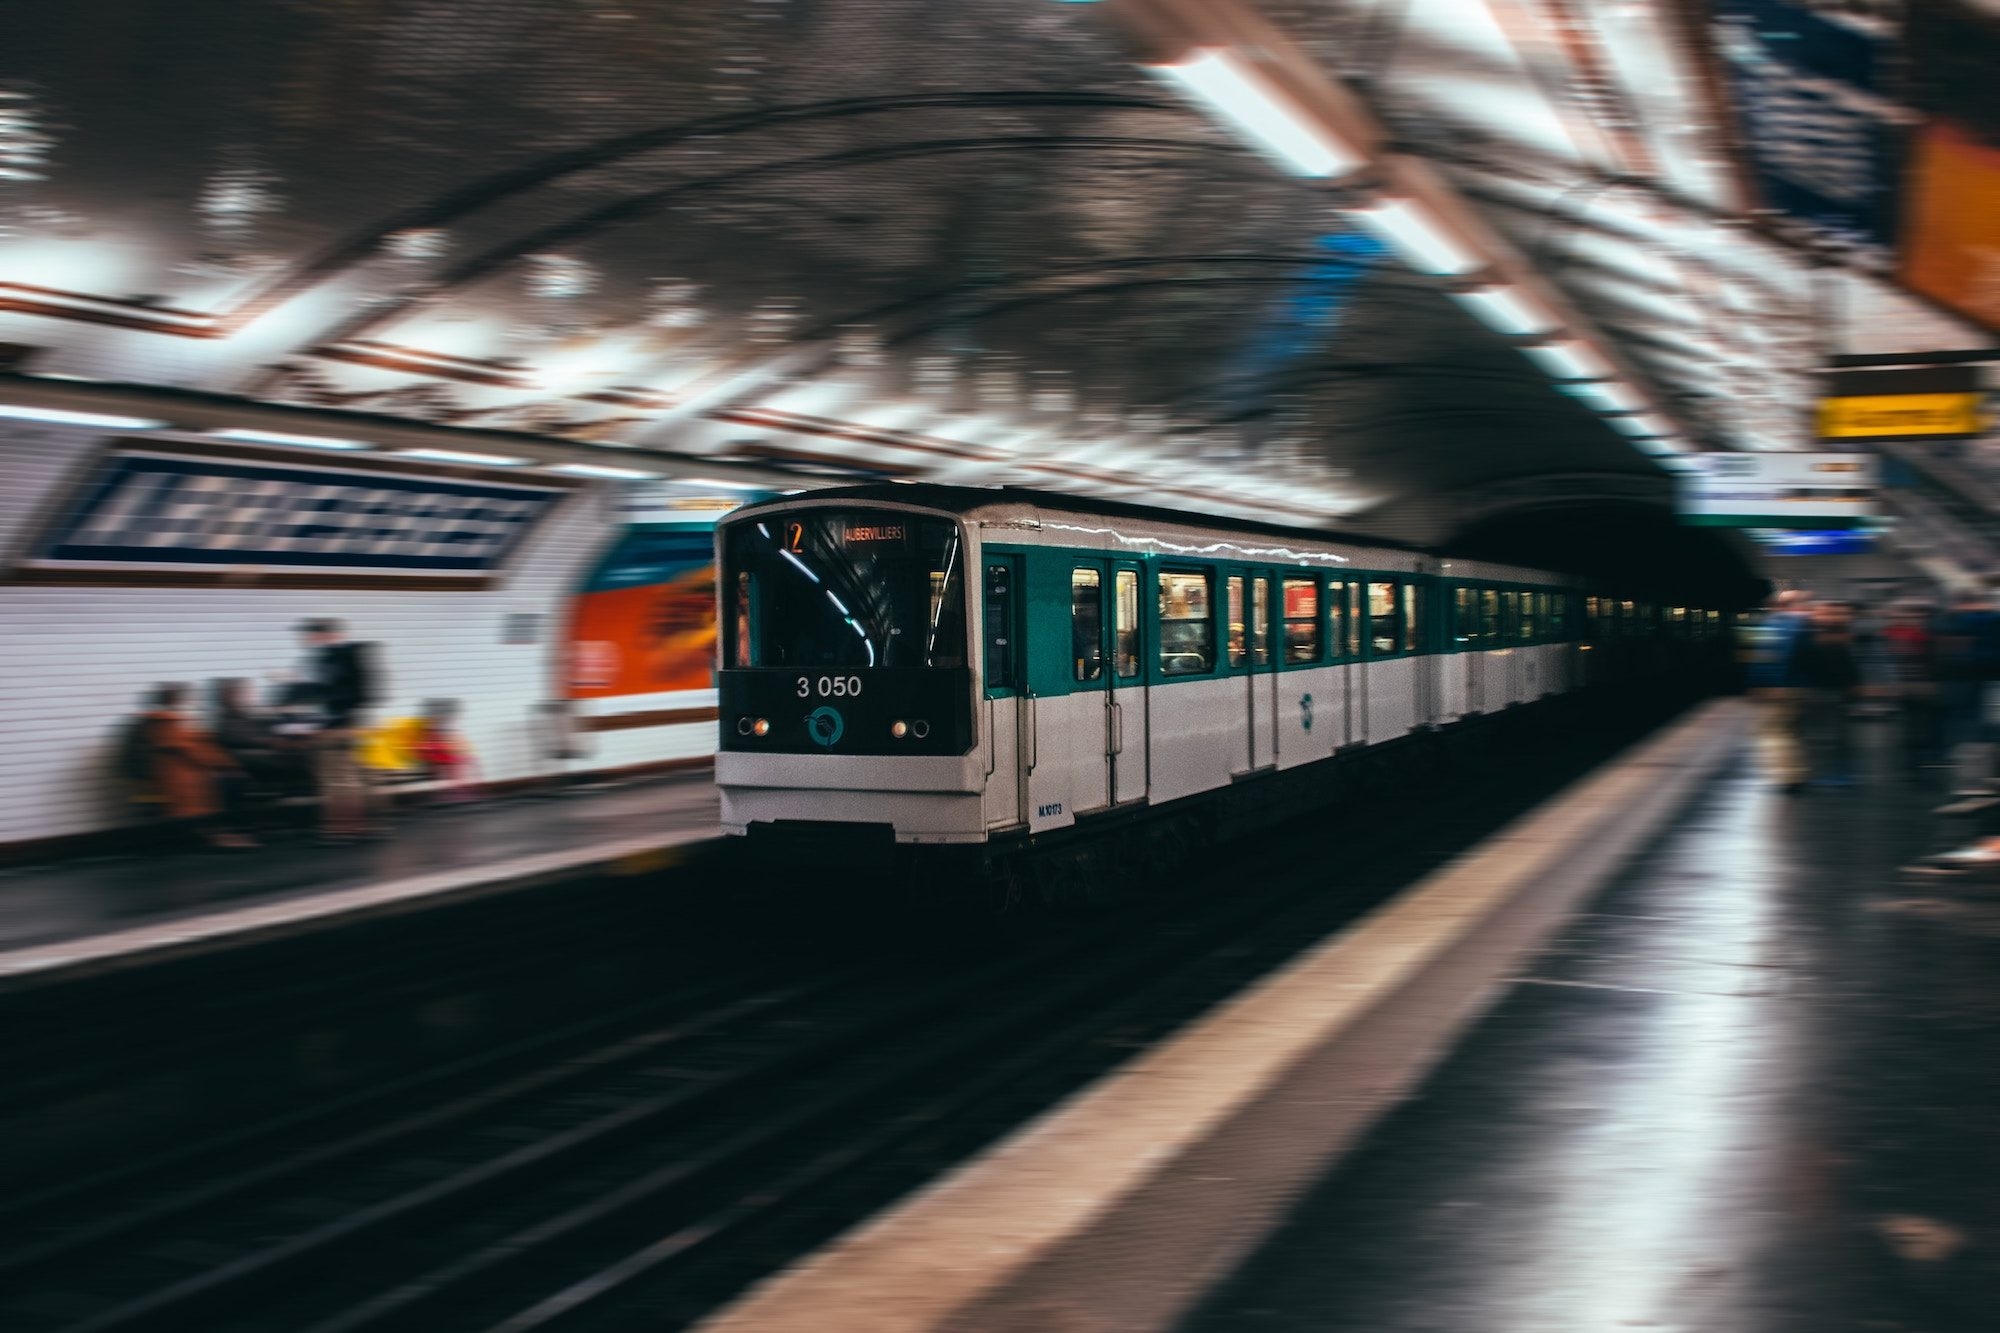 A metro train pulling in at Abbesses metro station. The train is the only thing in focus while the rest of the image is blurry.